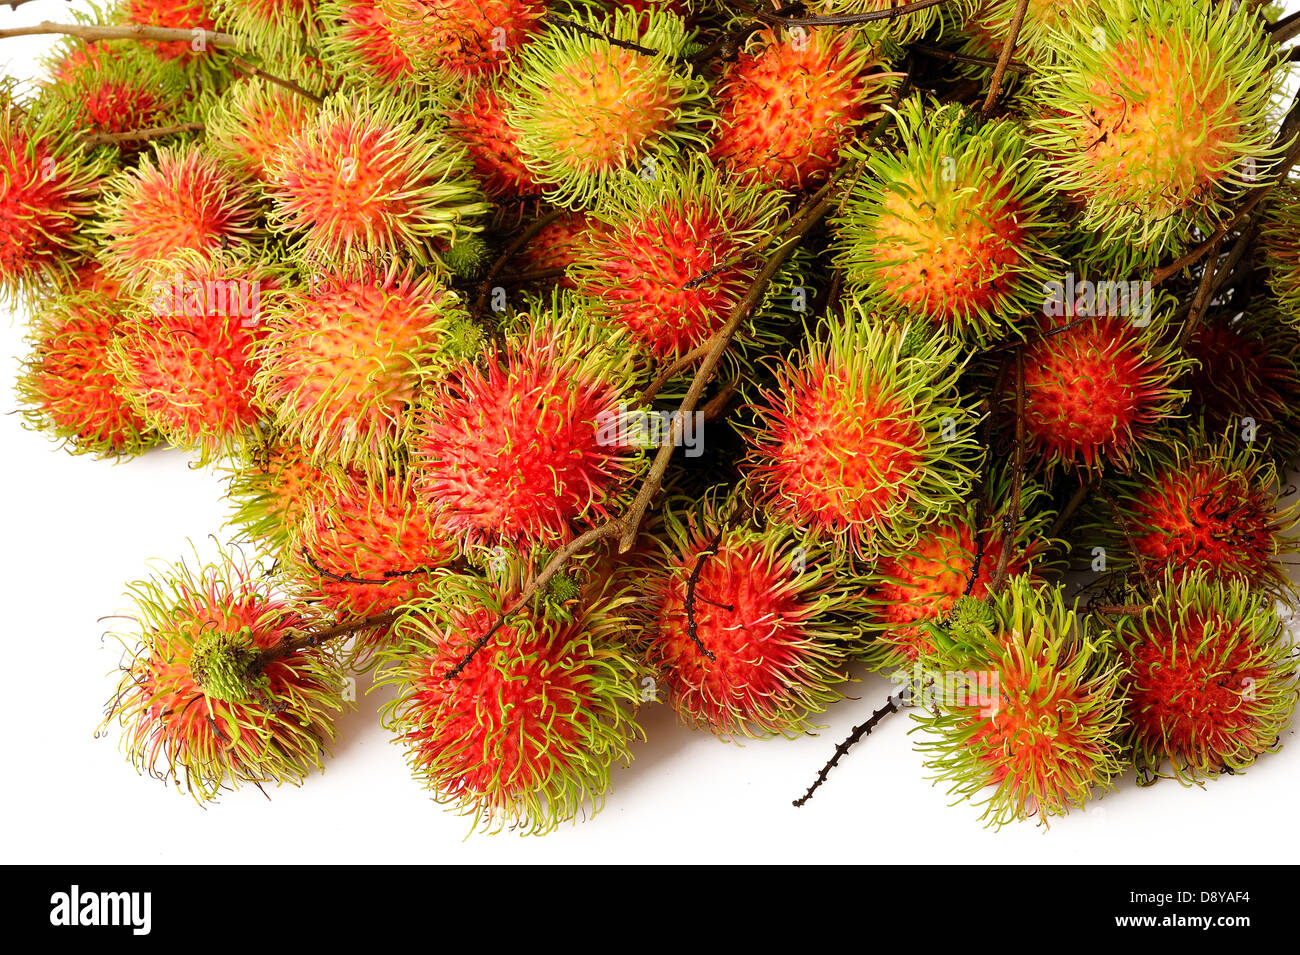 Rambutan fruits on white background - Stock Image